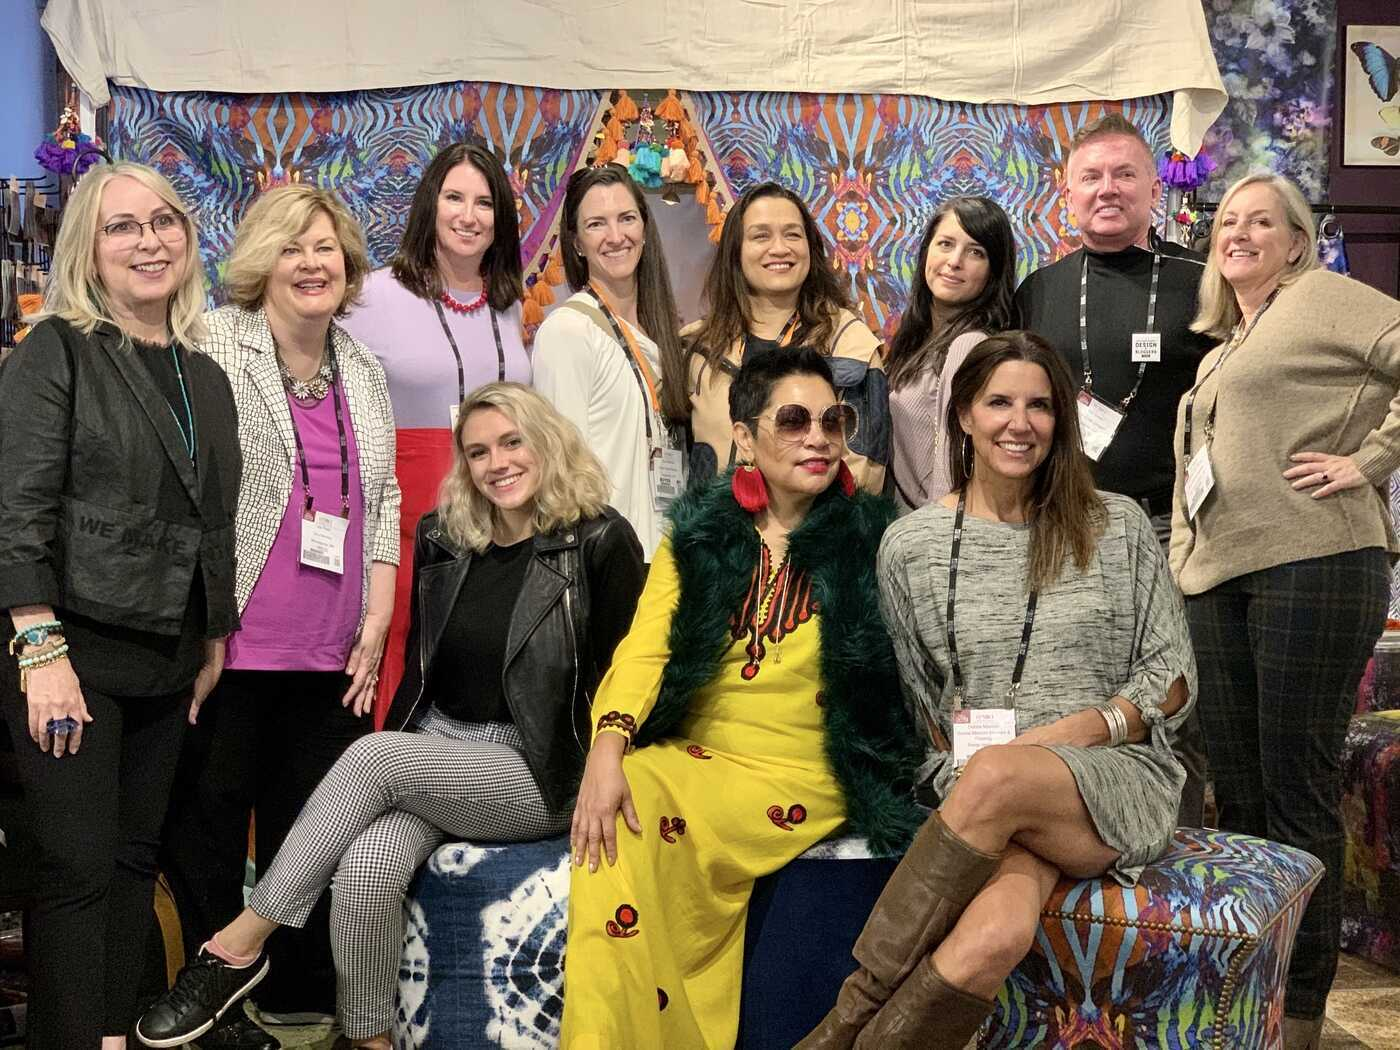 We made our High Point Market debut and welcomed interior designers, shop owners, bloggers and influencers through the folds of our one-of-a-kind tent into our boho luxe world.